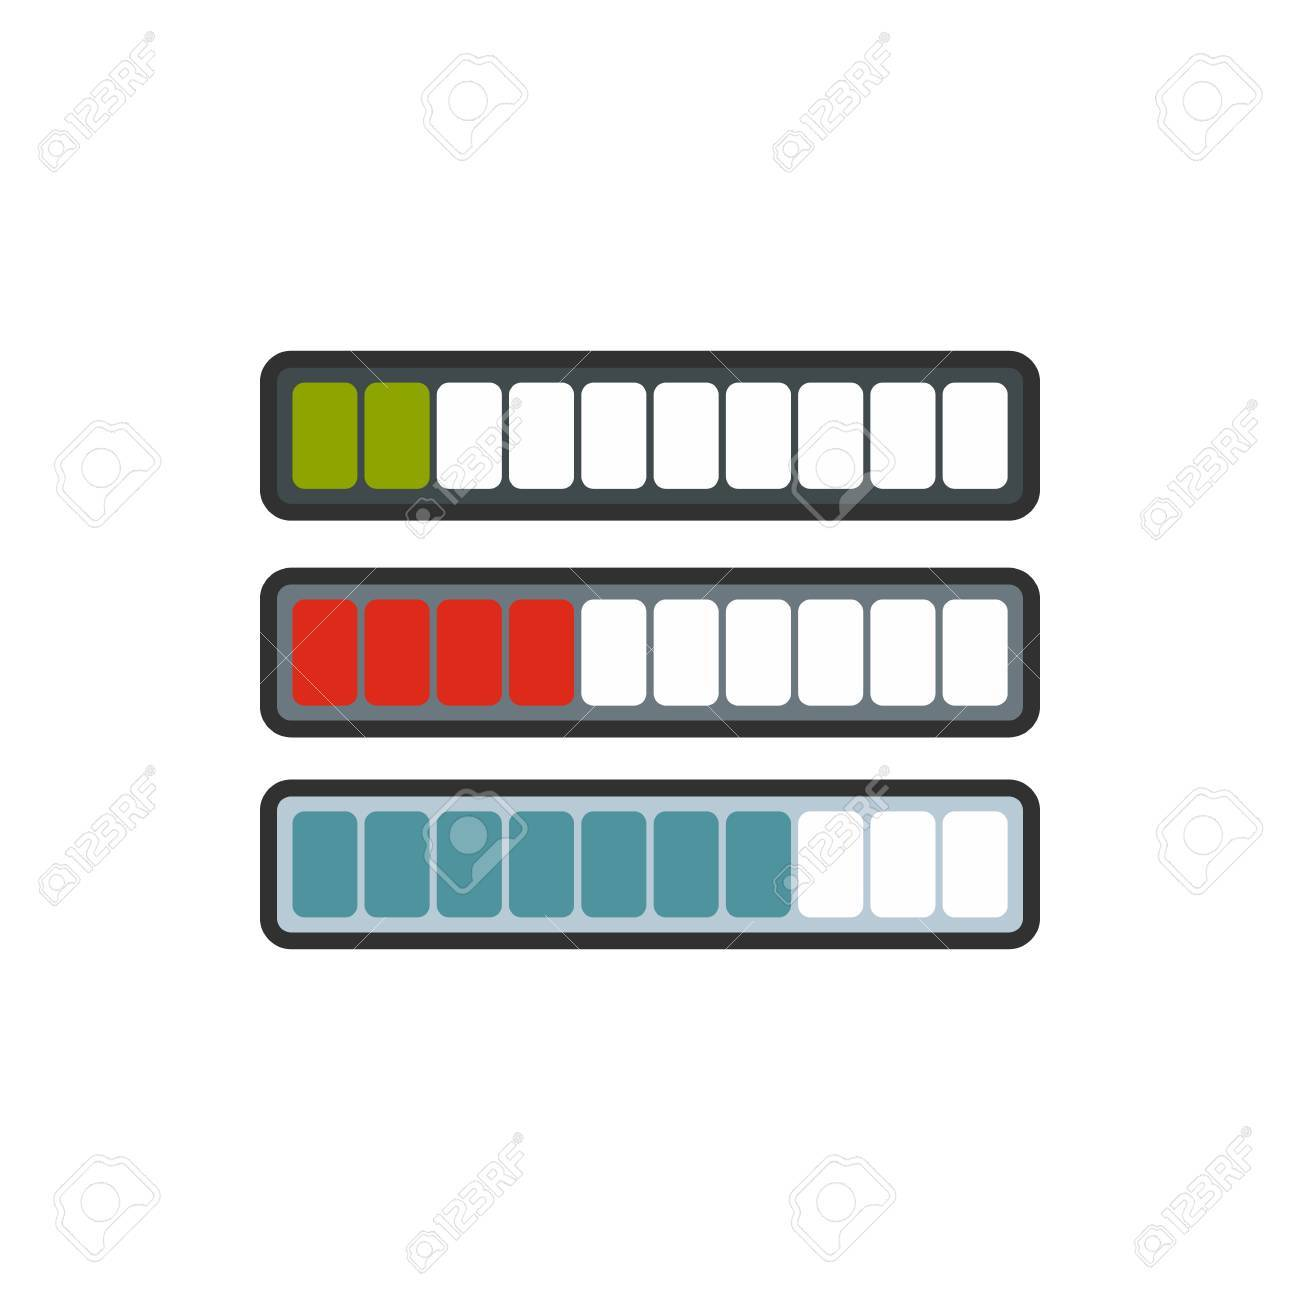 Sign horizontal columns download online icon in flat style sign horizontal columns download online icon in flat style isolated on white background loading symbol biocorpaavc Image collections